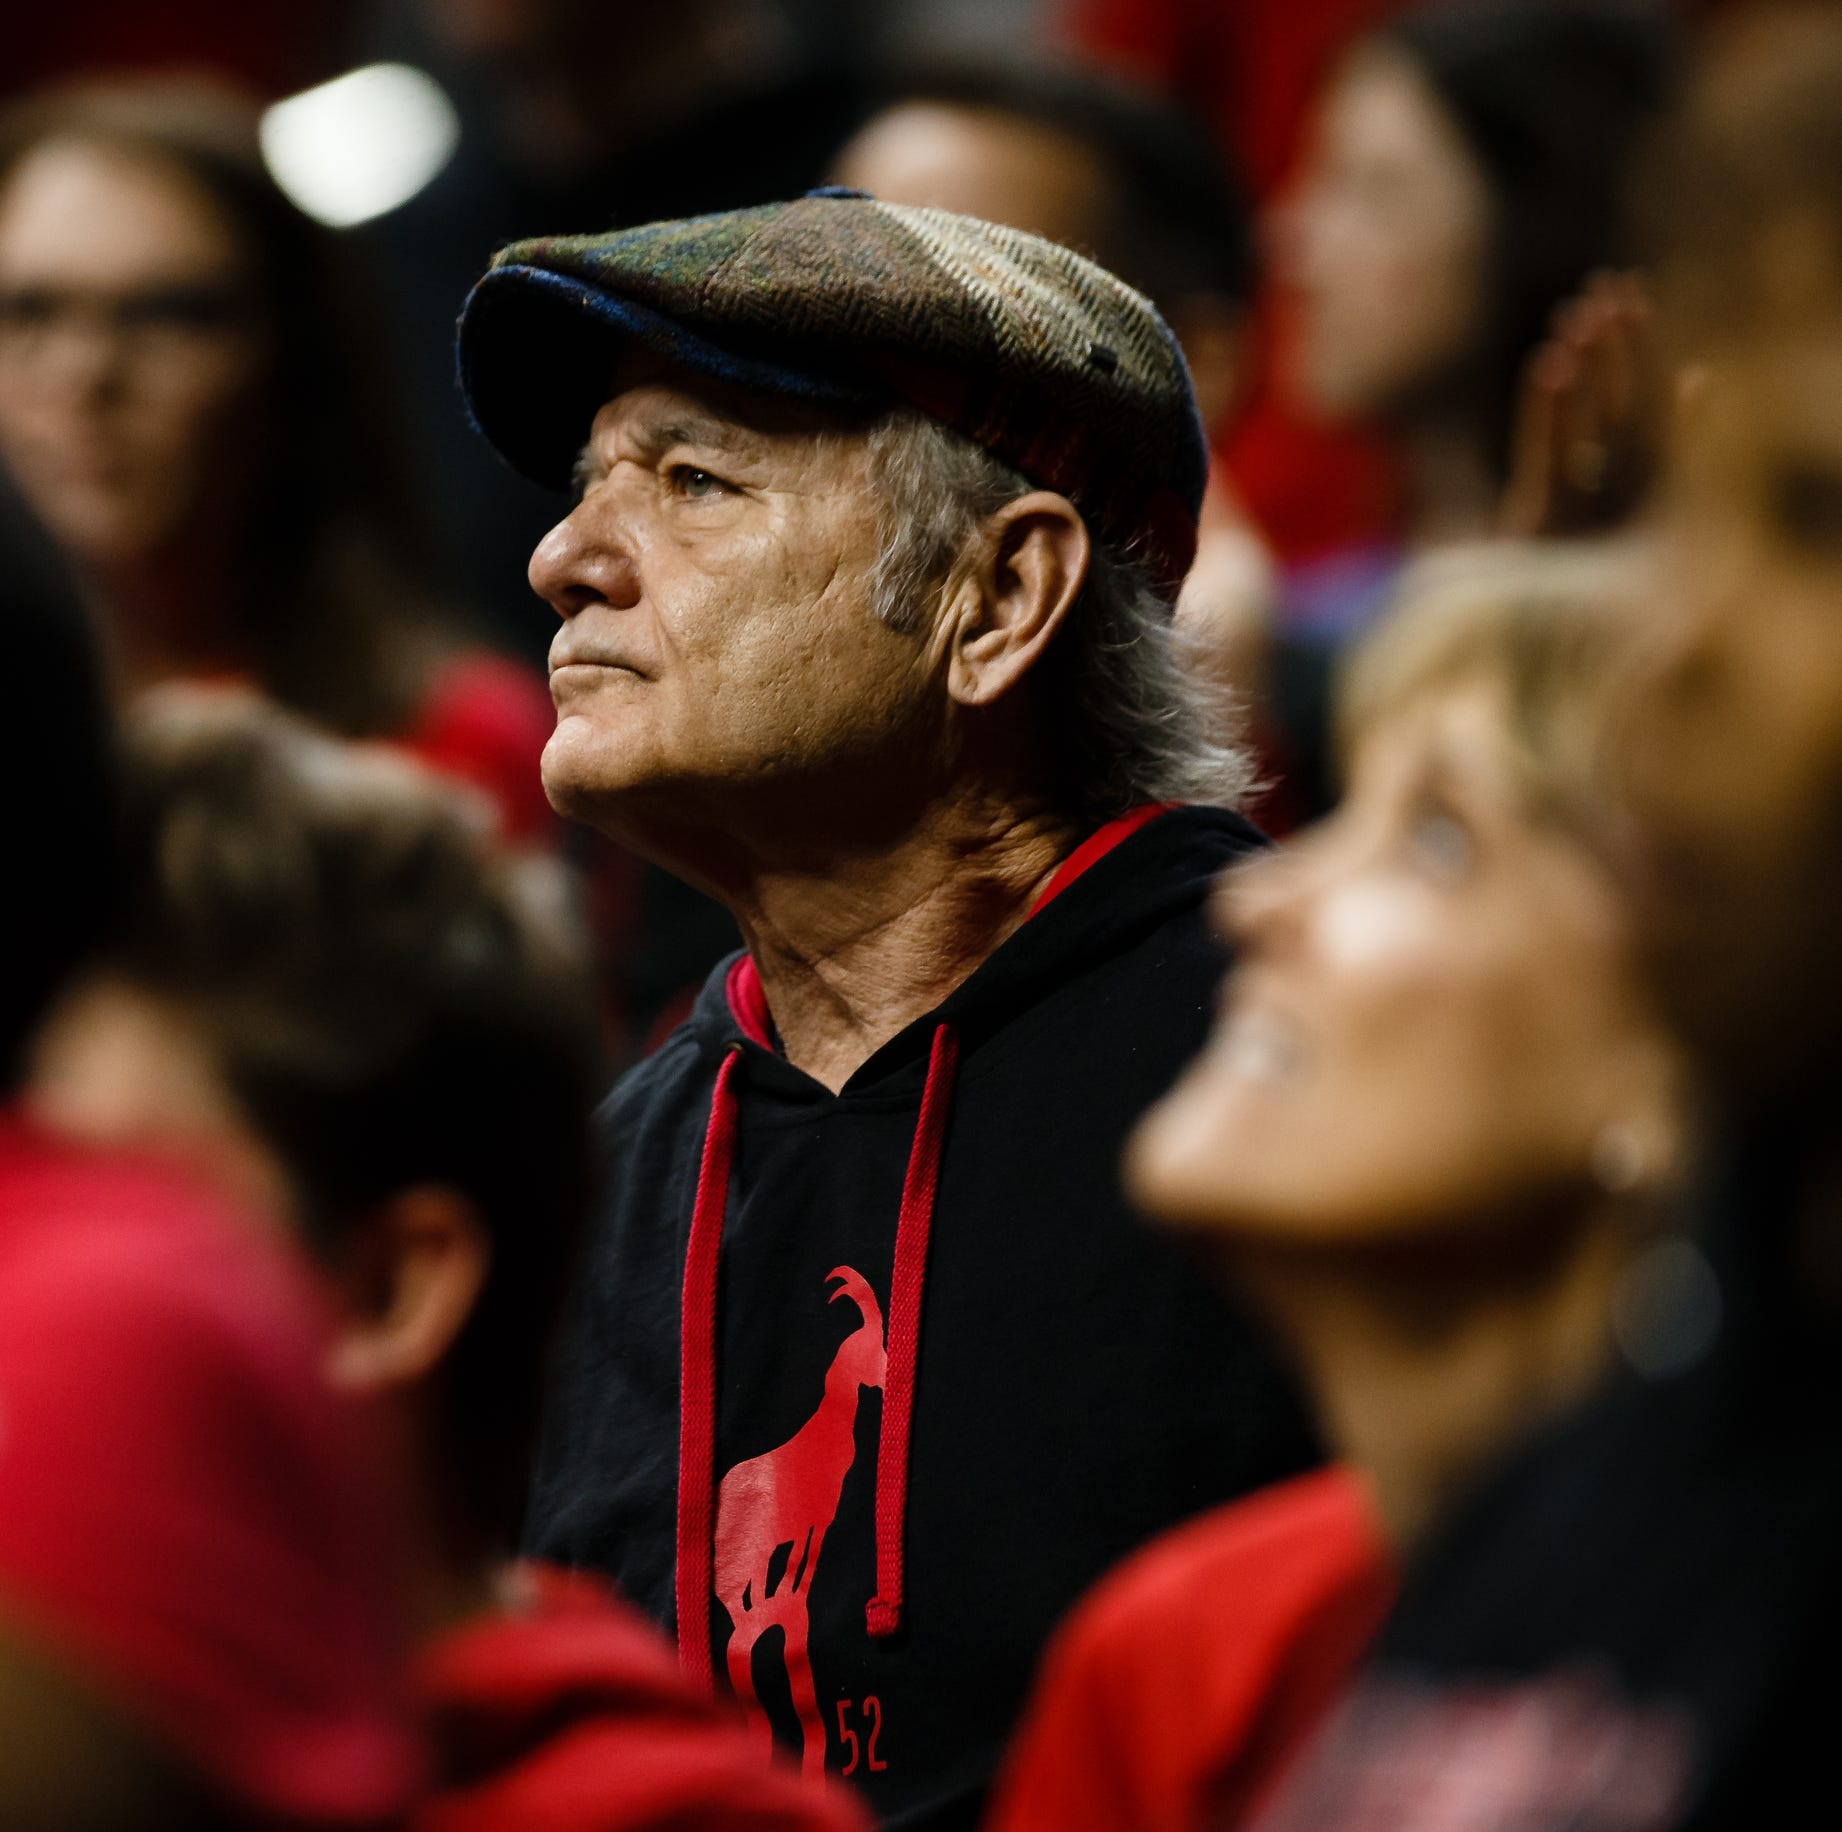 Bill Murray basks in honorable defeat with Louisville staff and fans before leaving Des Moines